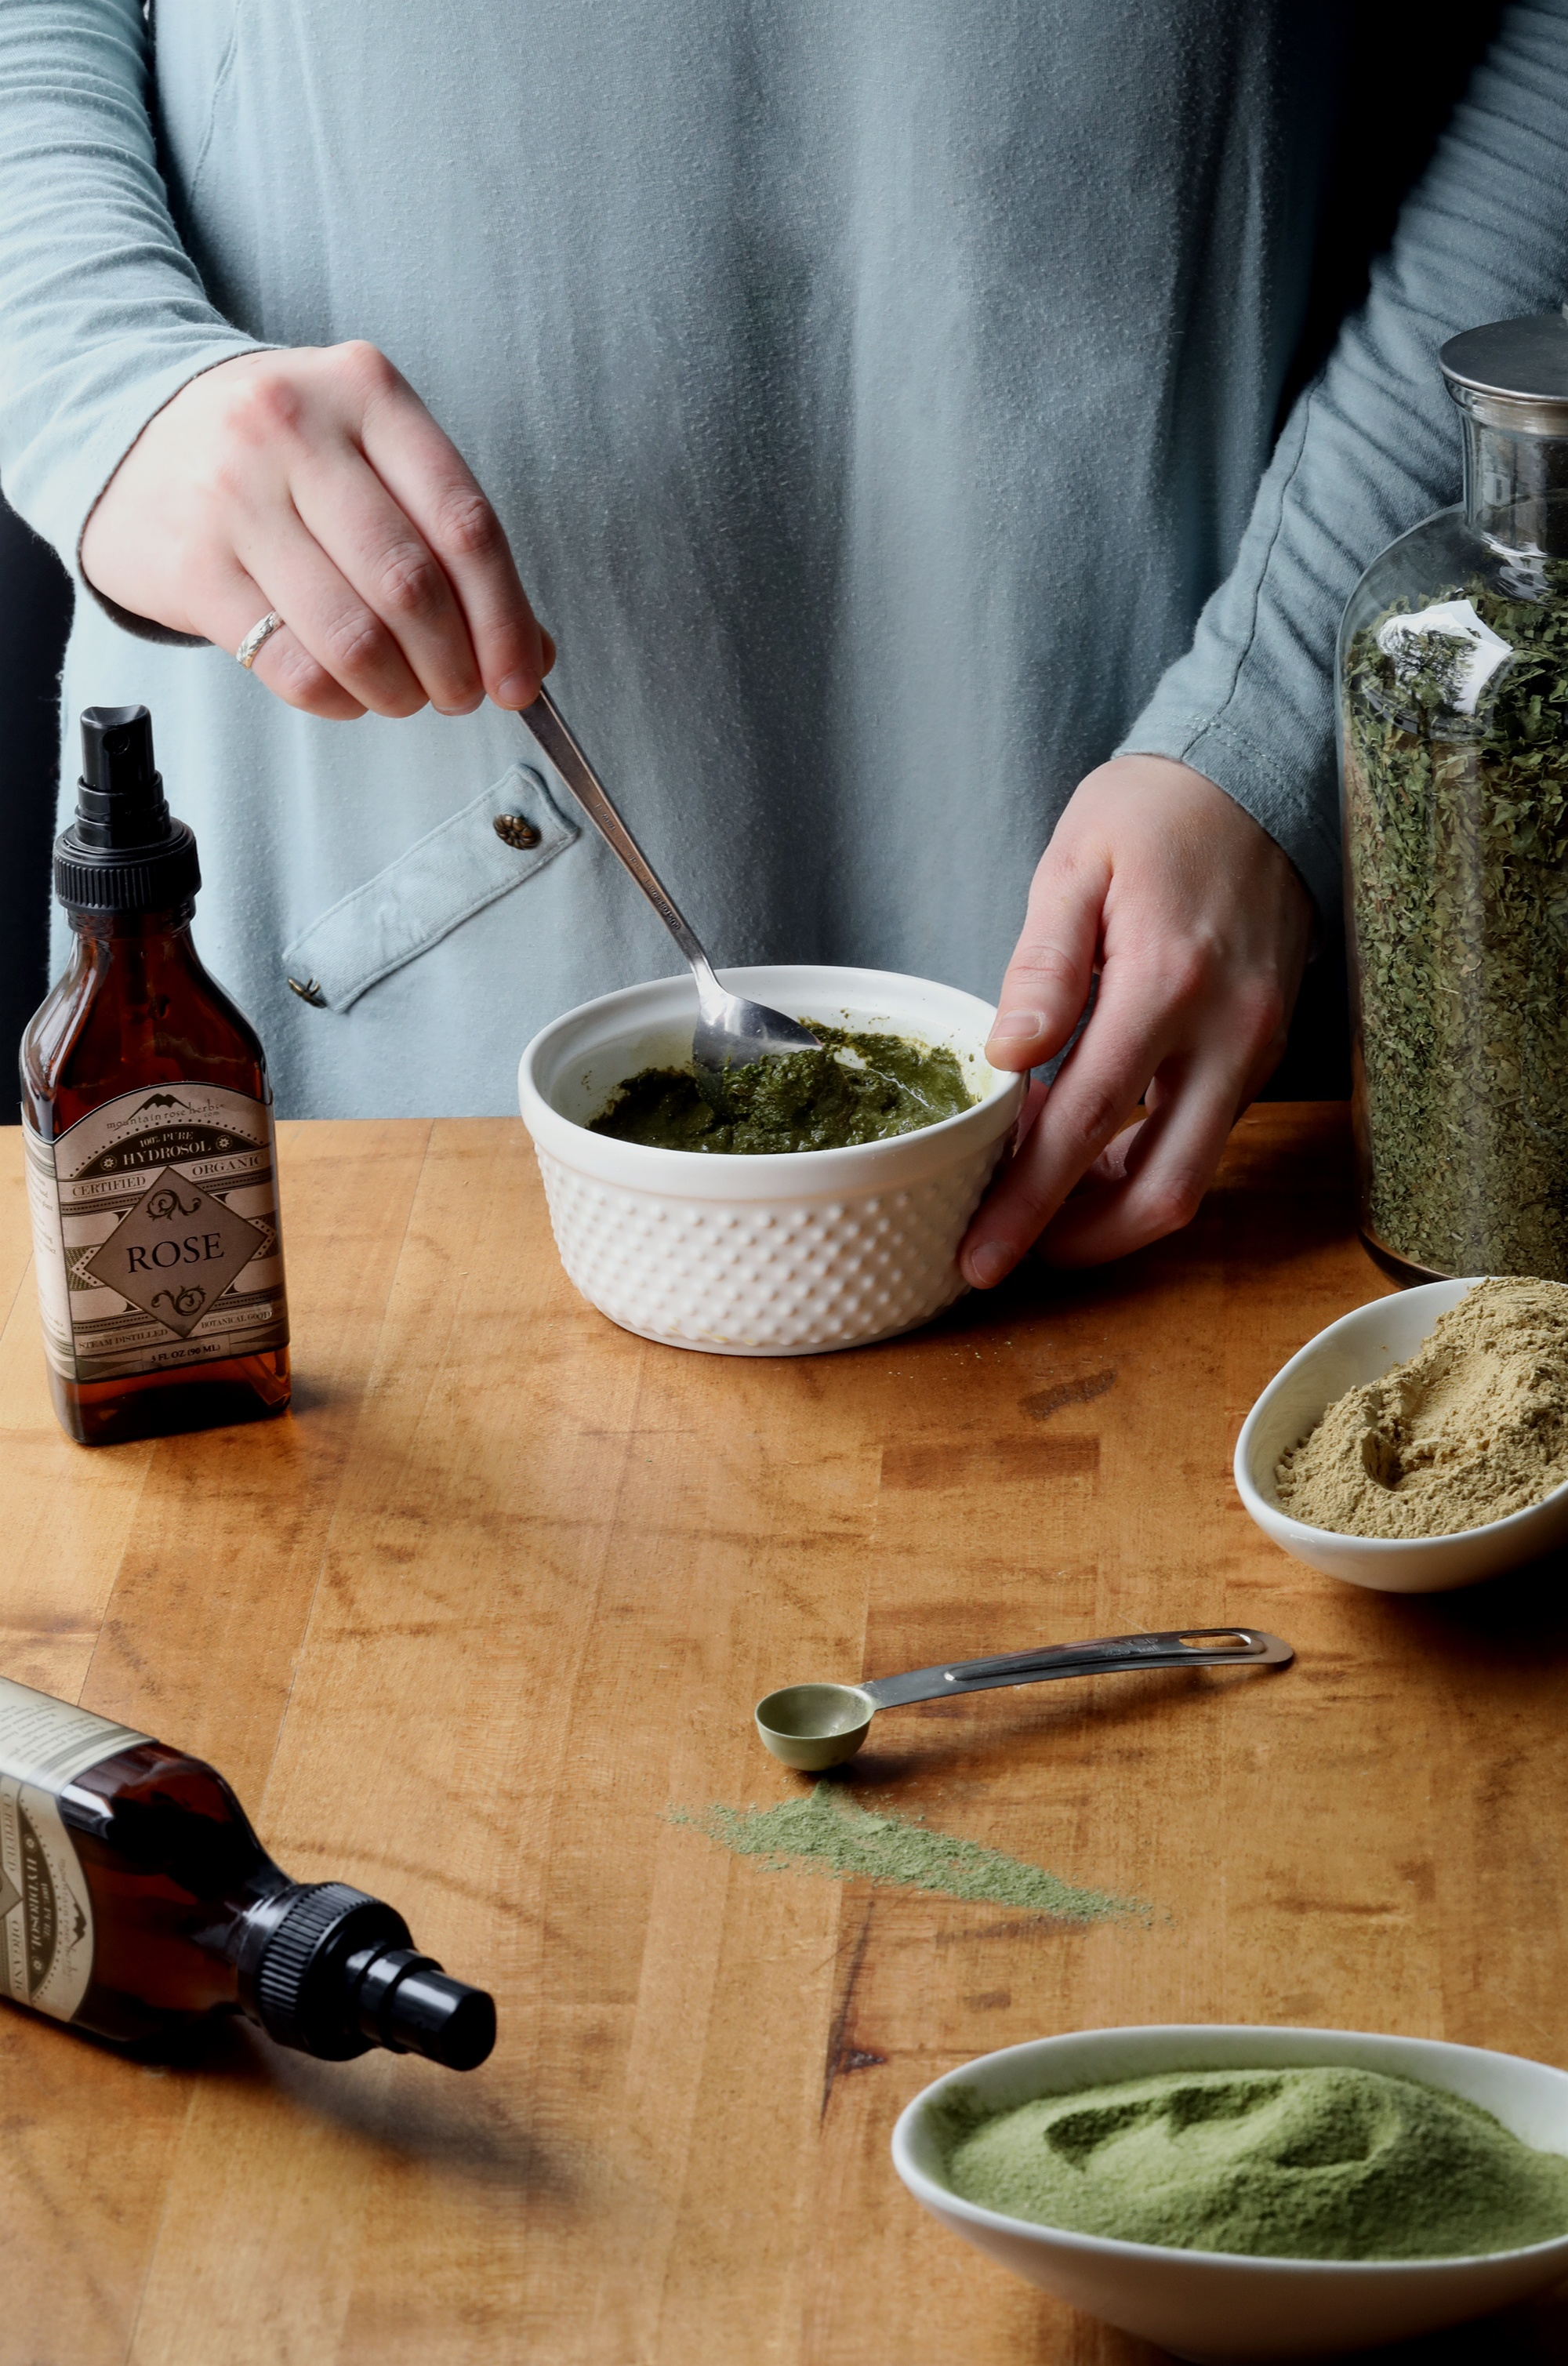 Hands mixing ayurvedic face mask from herbs and floral hydrosols